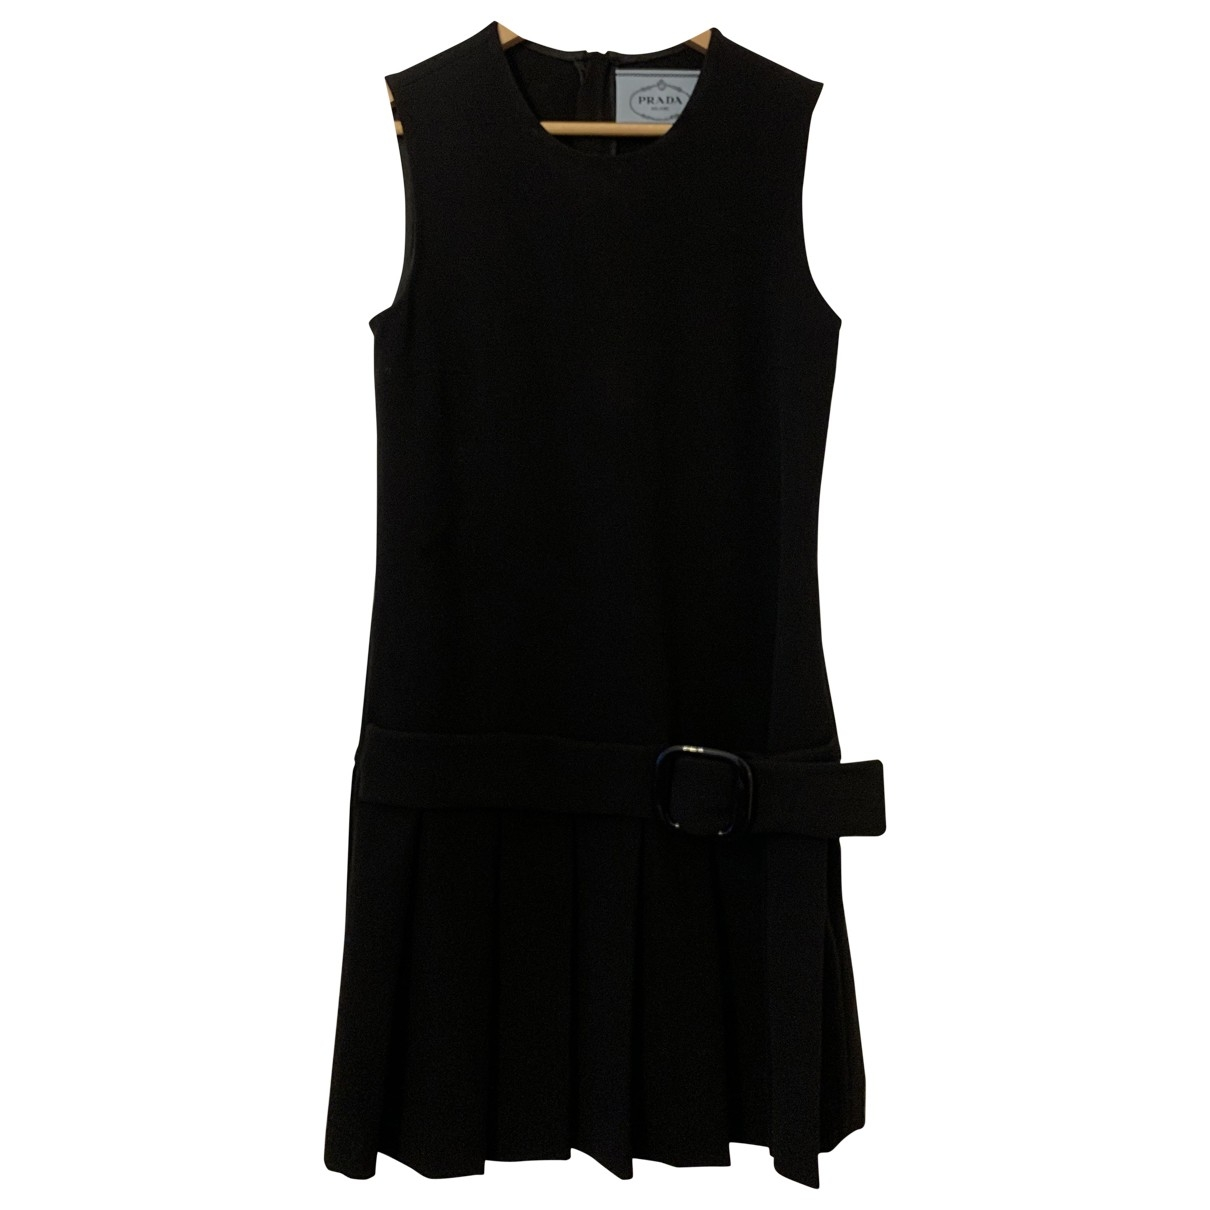 Prada \N Kleid in  Schwarz Synthetik